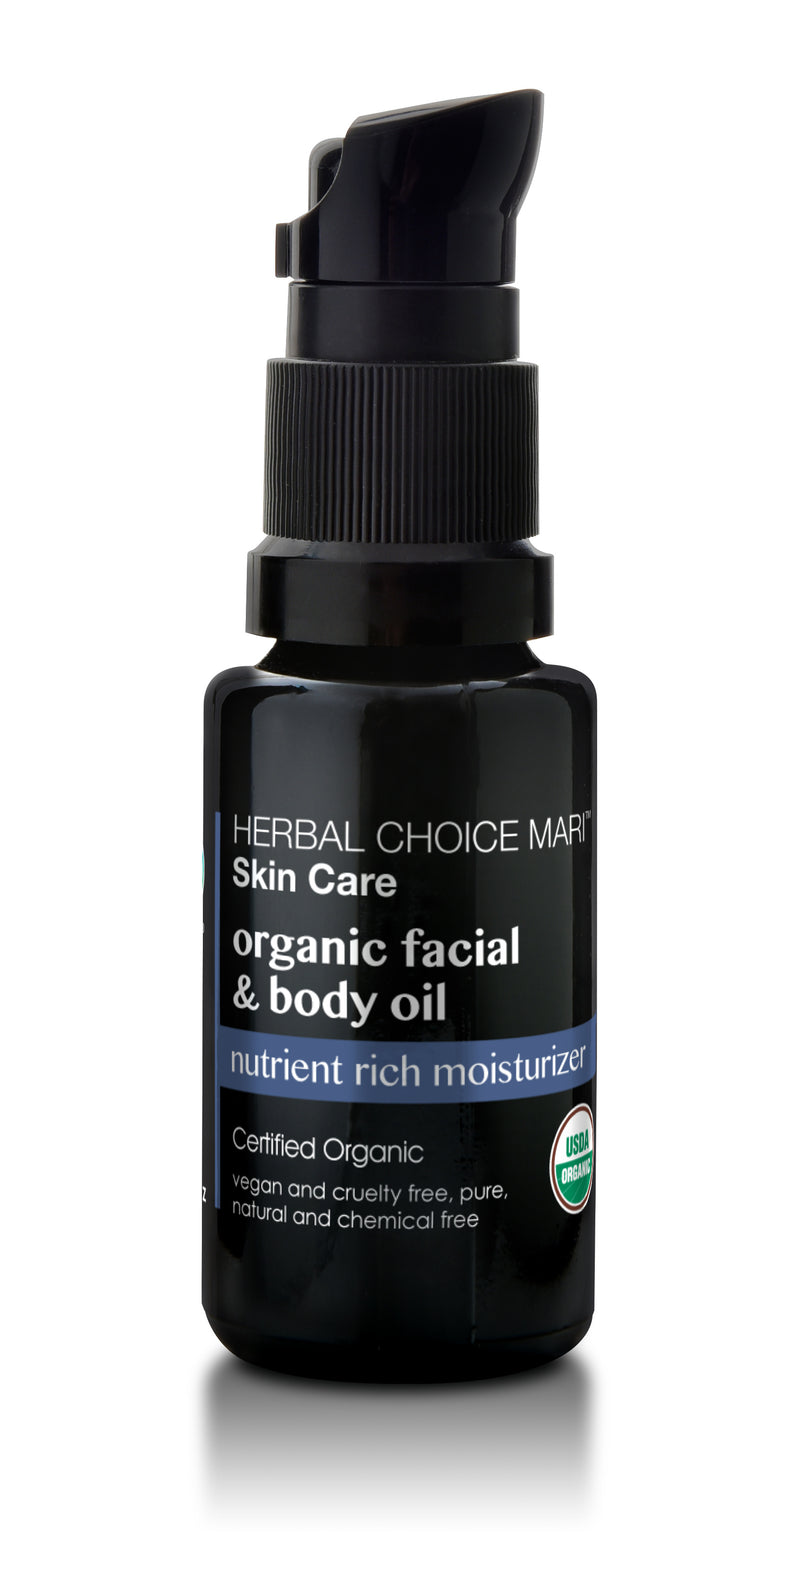 Herbal Choice Mari Organic Facial And Body Oil - Herbal Choice Mari Organic Facial And Body Oil - Herbal Choice Mari Organic Facial And Body Oil